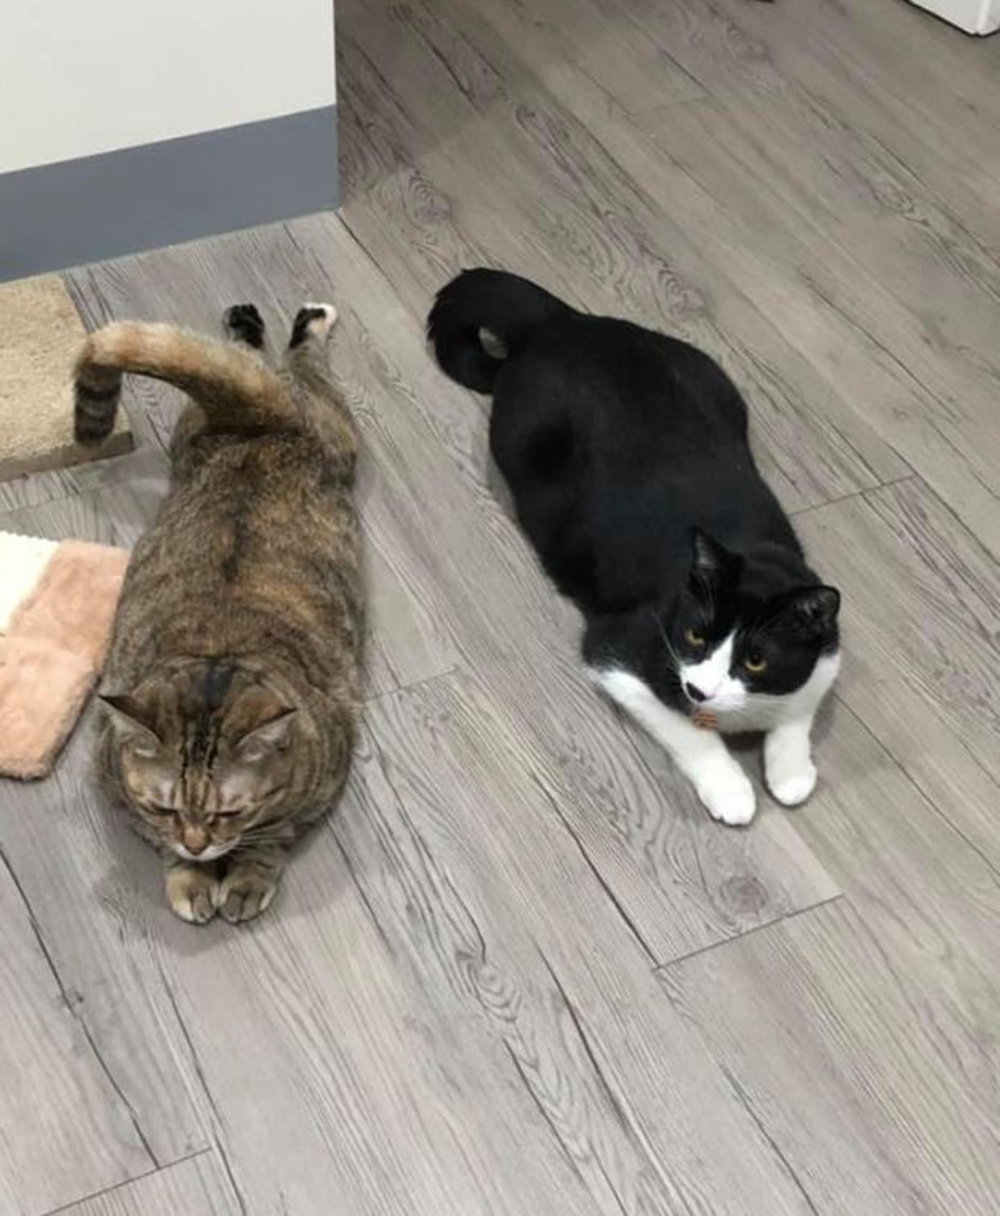 the two other adopted cat